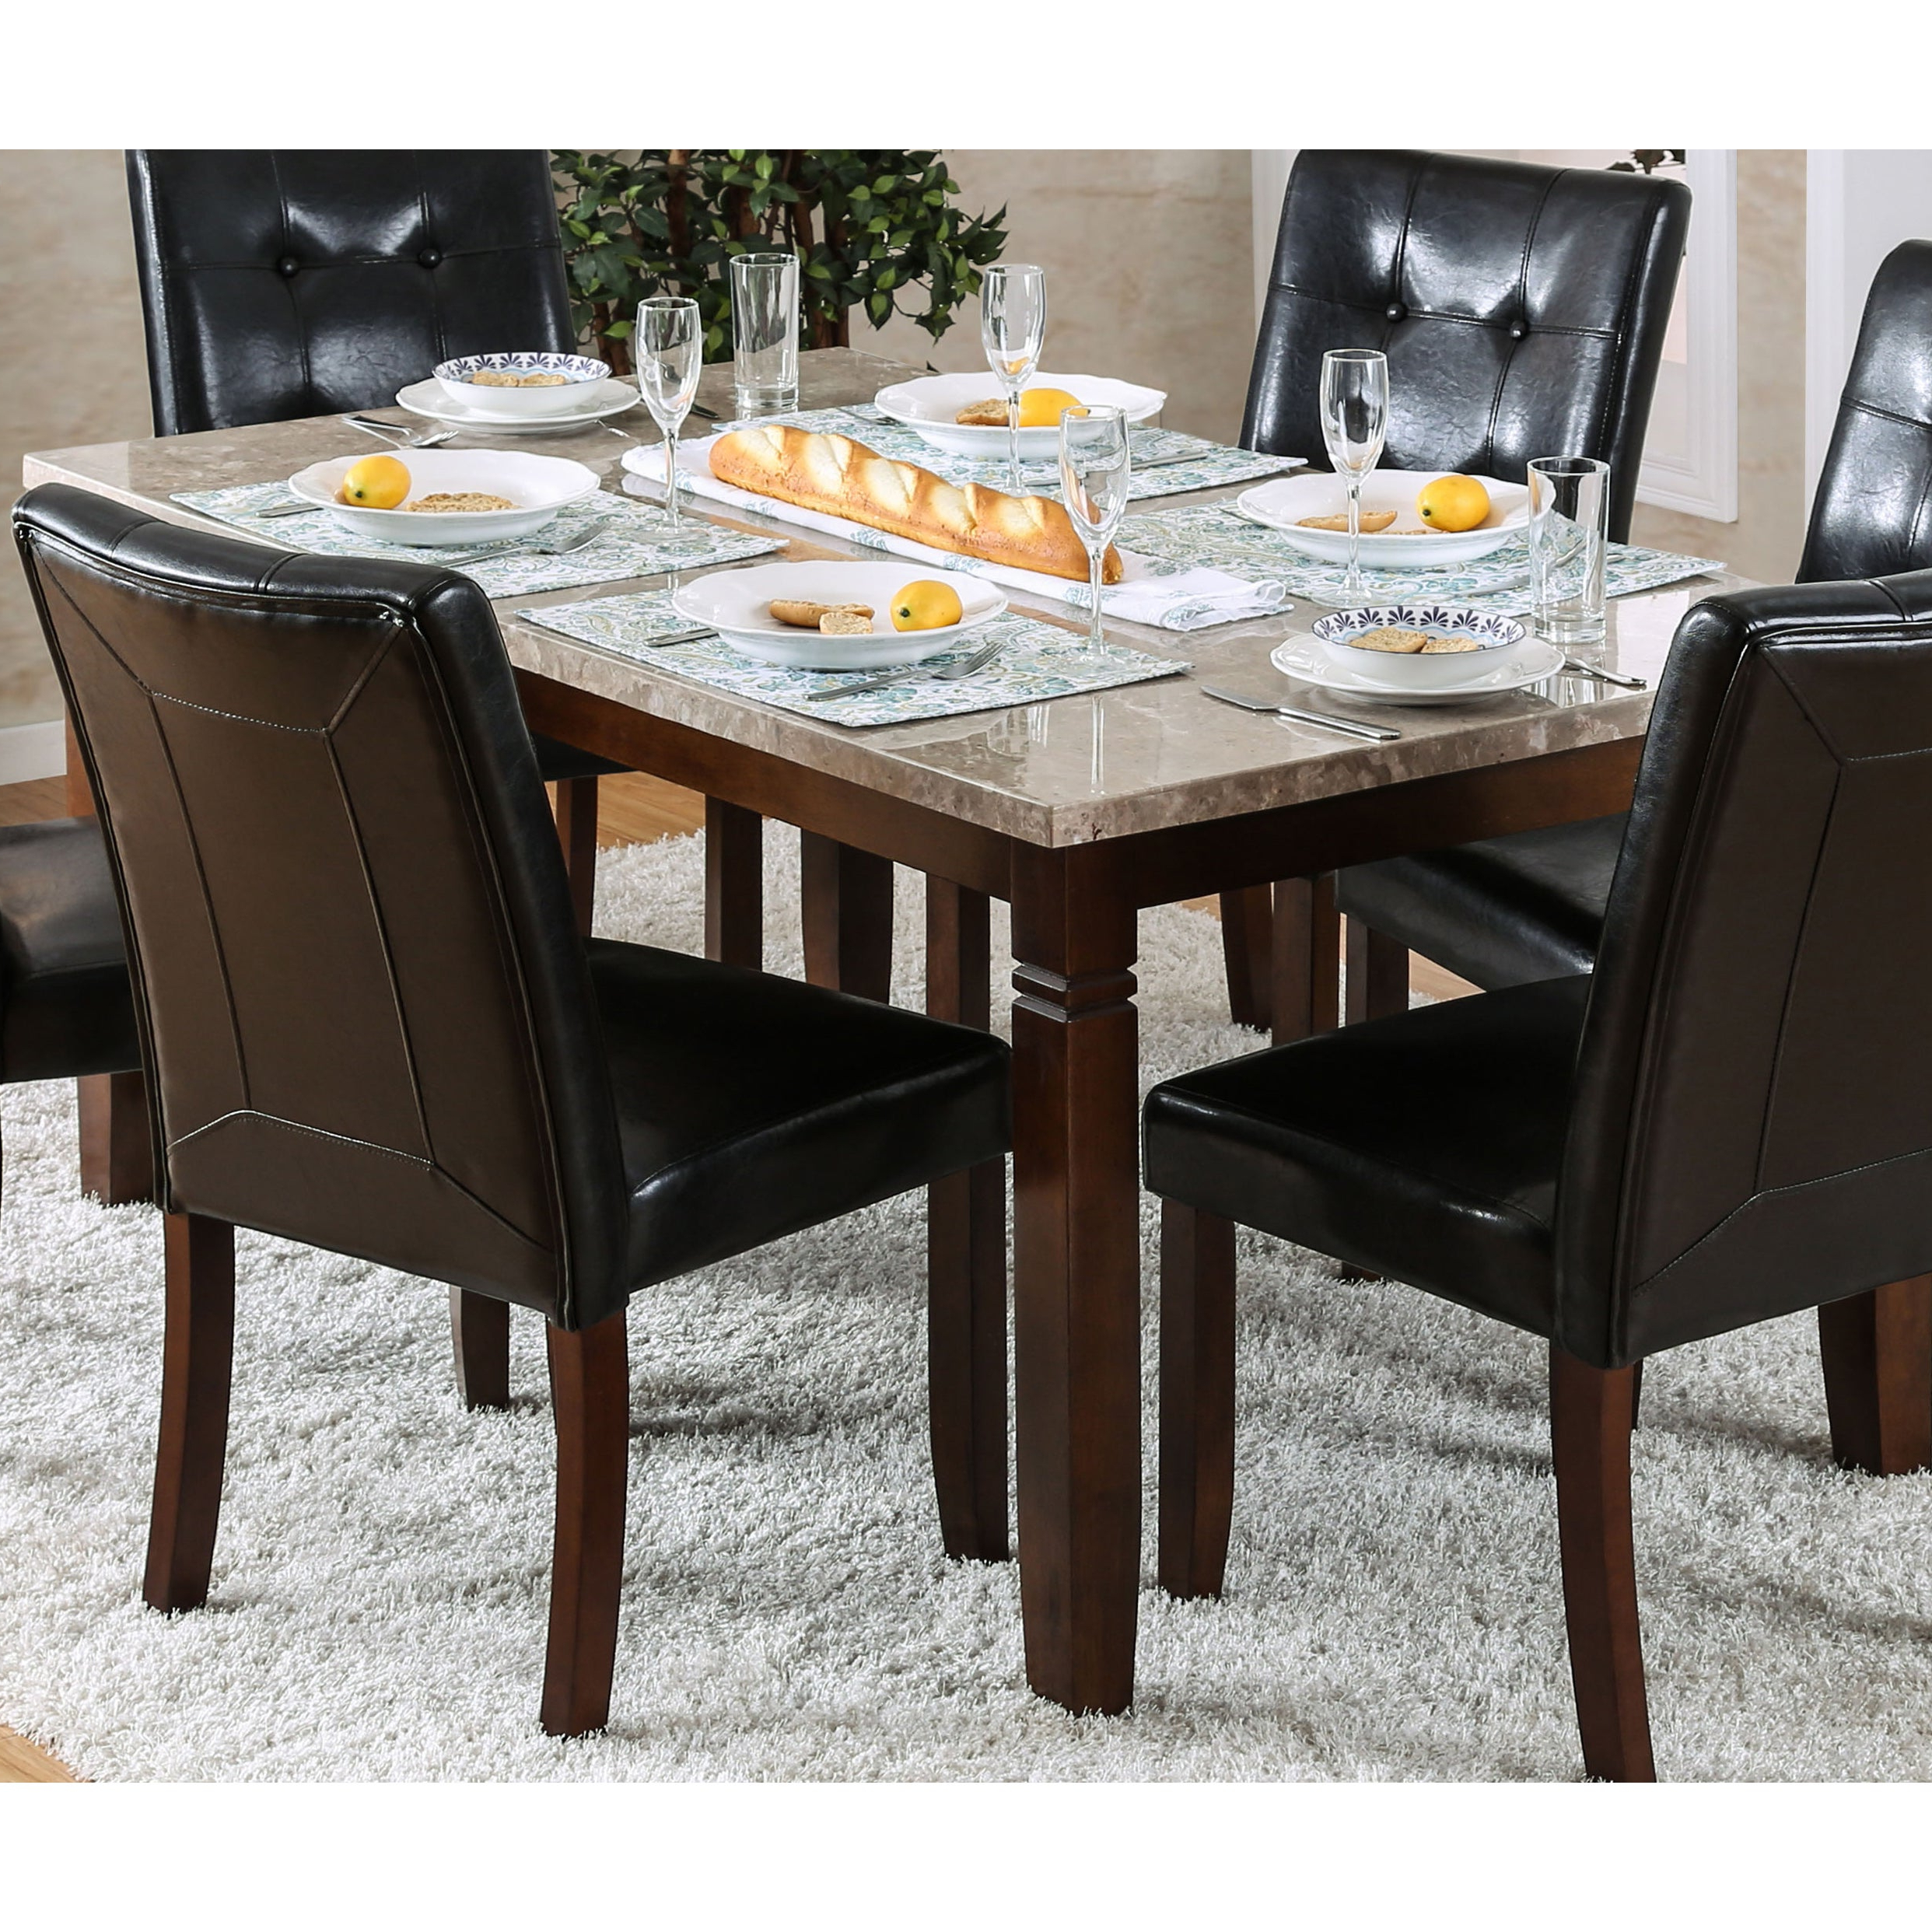 Our Best Pertaining To Popular North Reading 5 Piece Dining Table Sets (View 19 of 25)